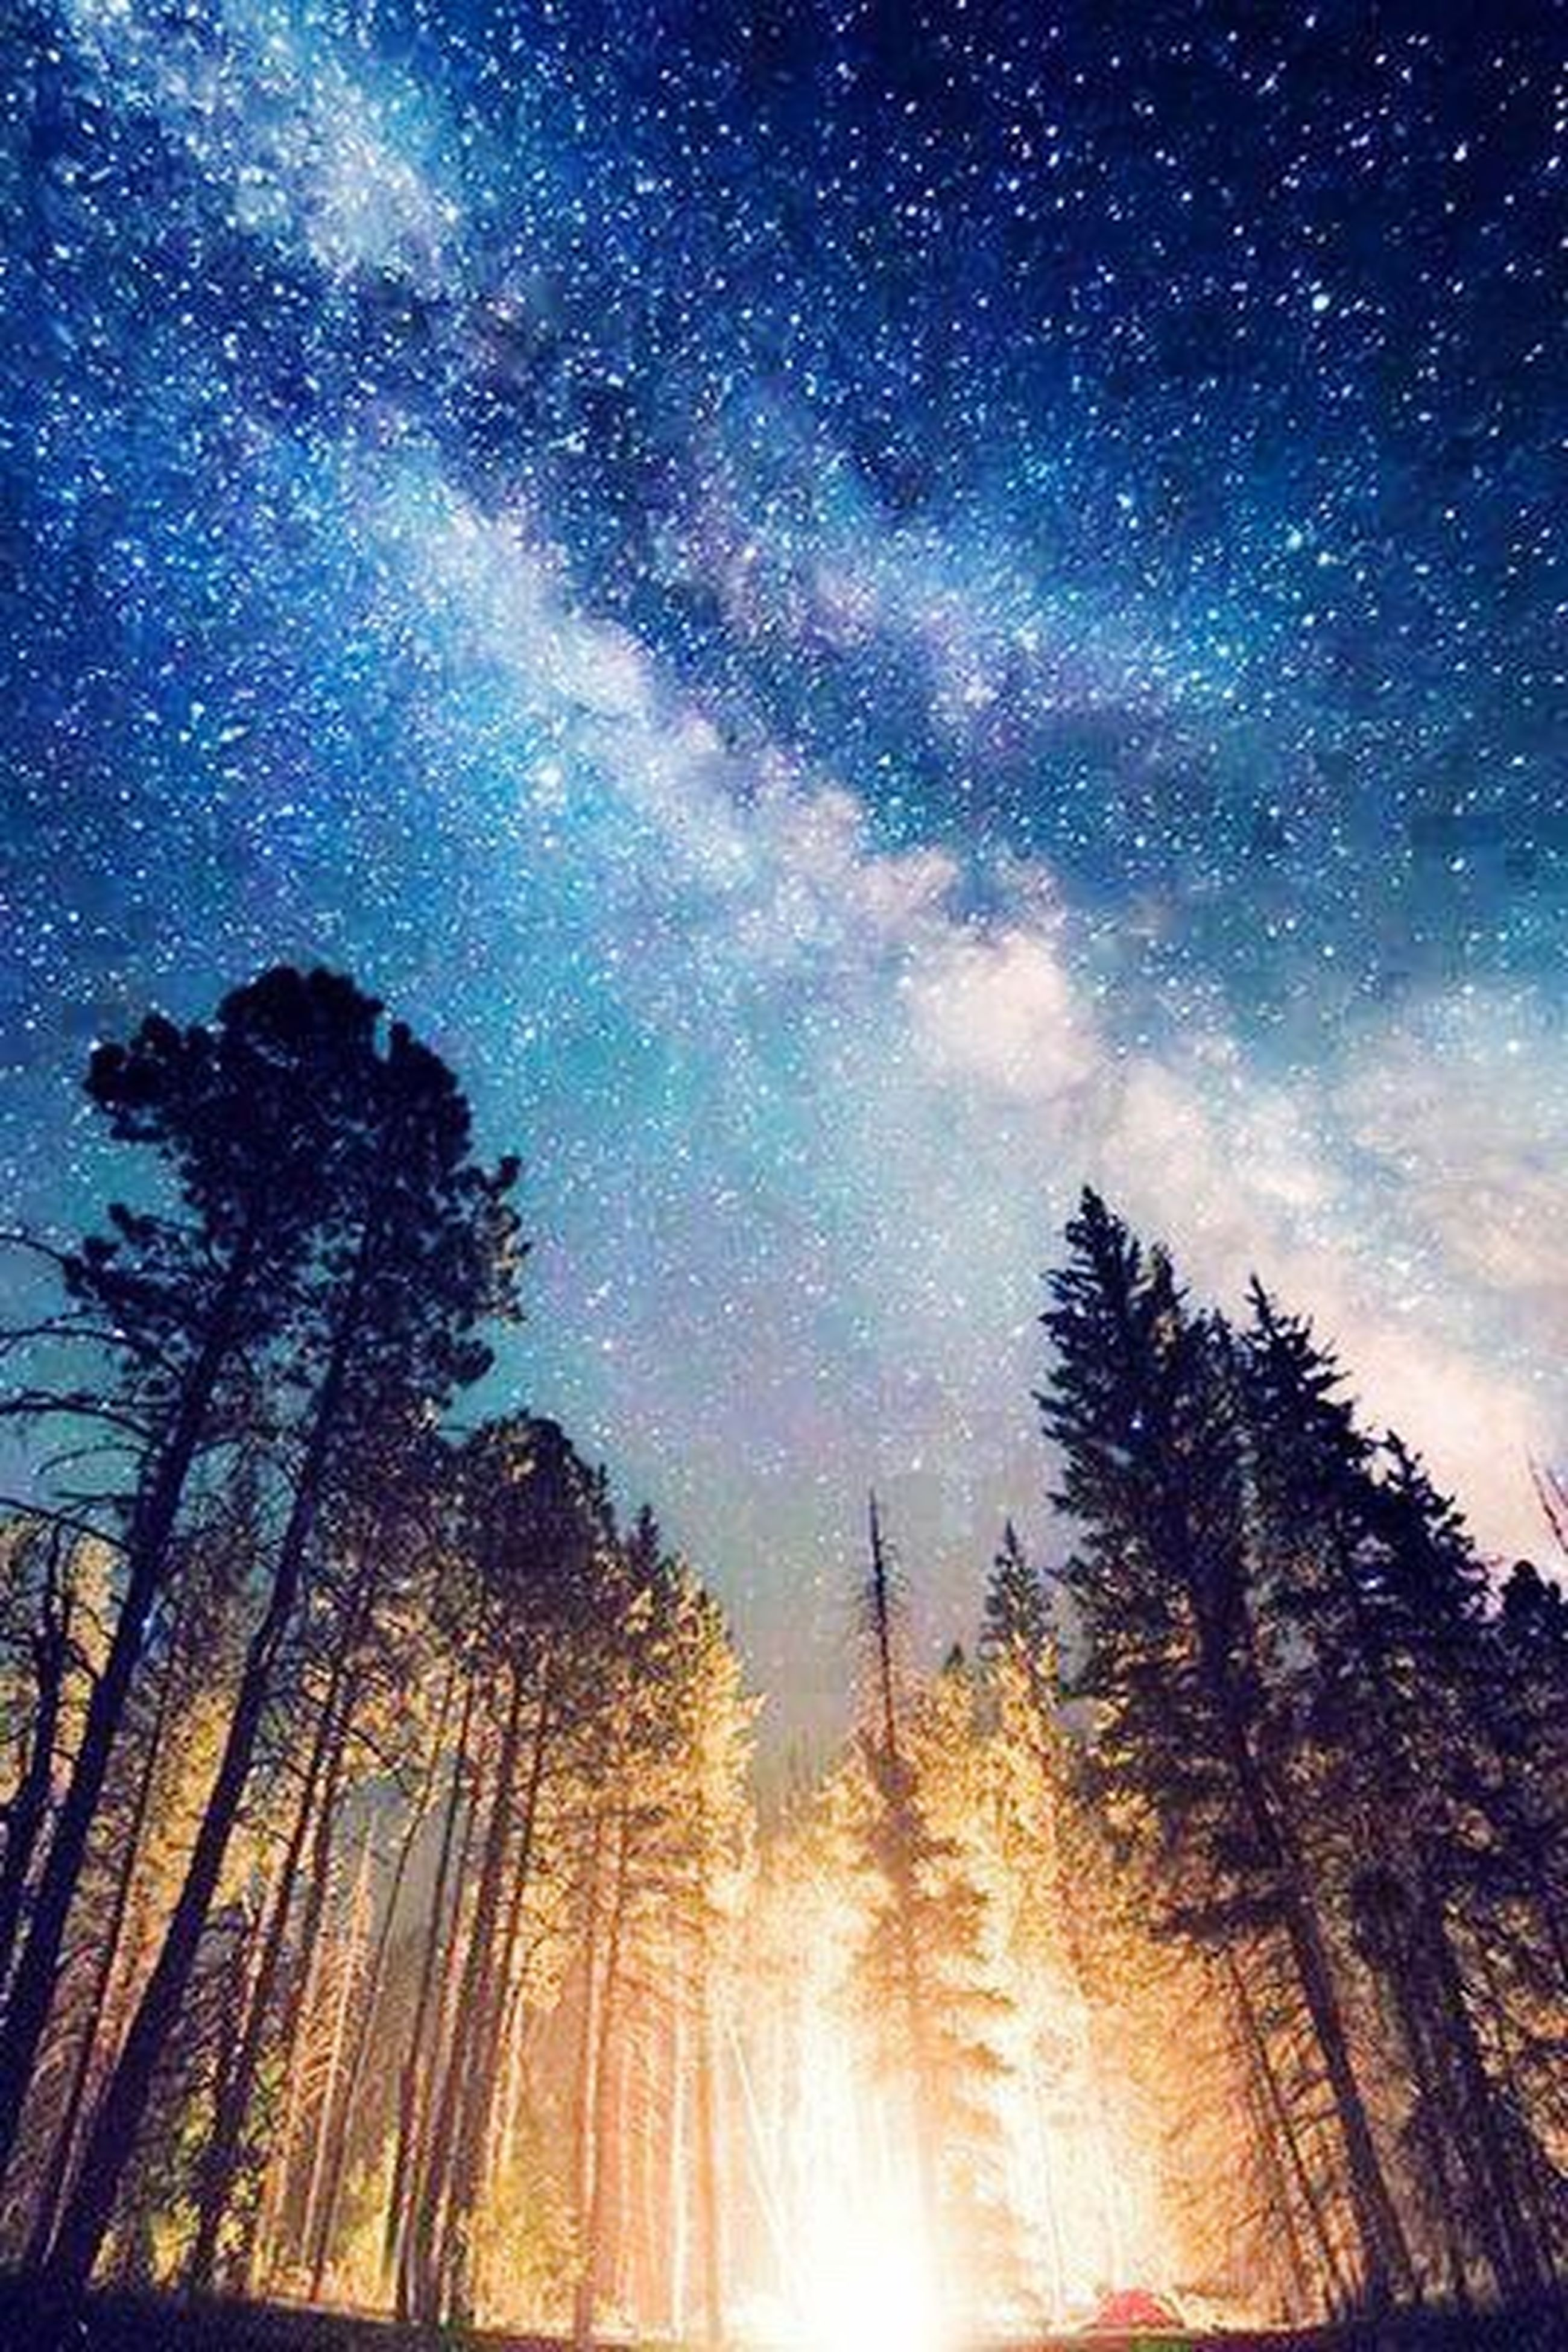 night, star - space, star field, tree, low angle view, scenics, sky, beauty in nature, astronomy, tranquility, tranquil scene, silhouette, nature, star, idyllic, galaxy, infinity, majestic, blue, milky way